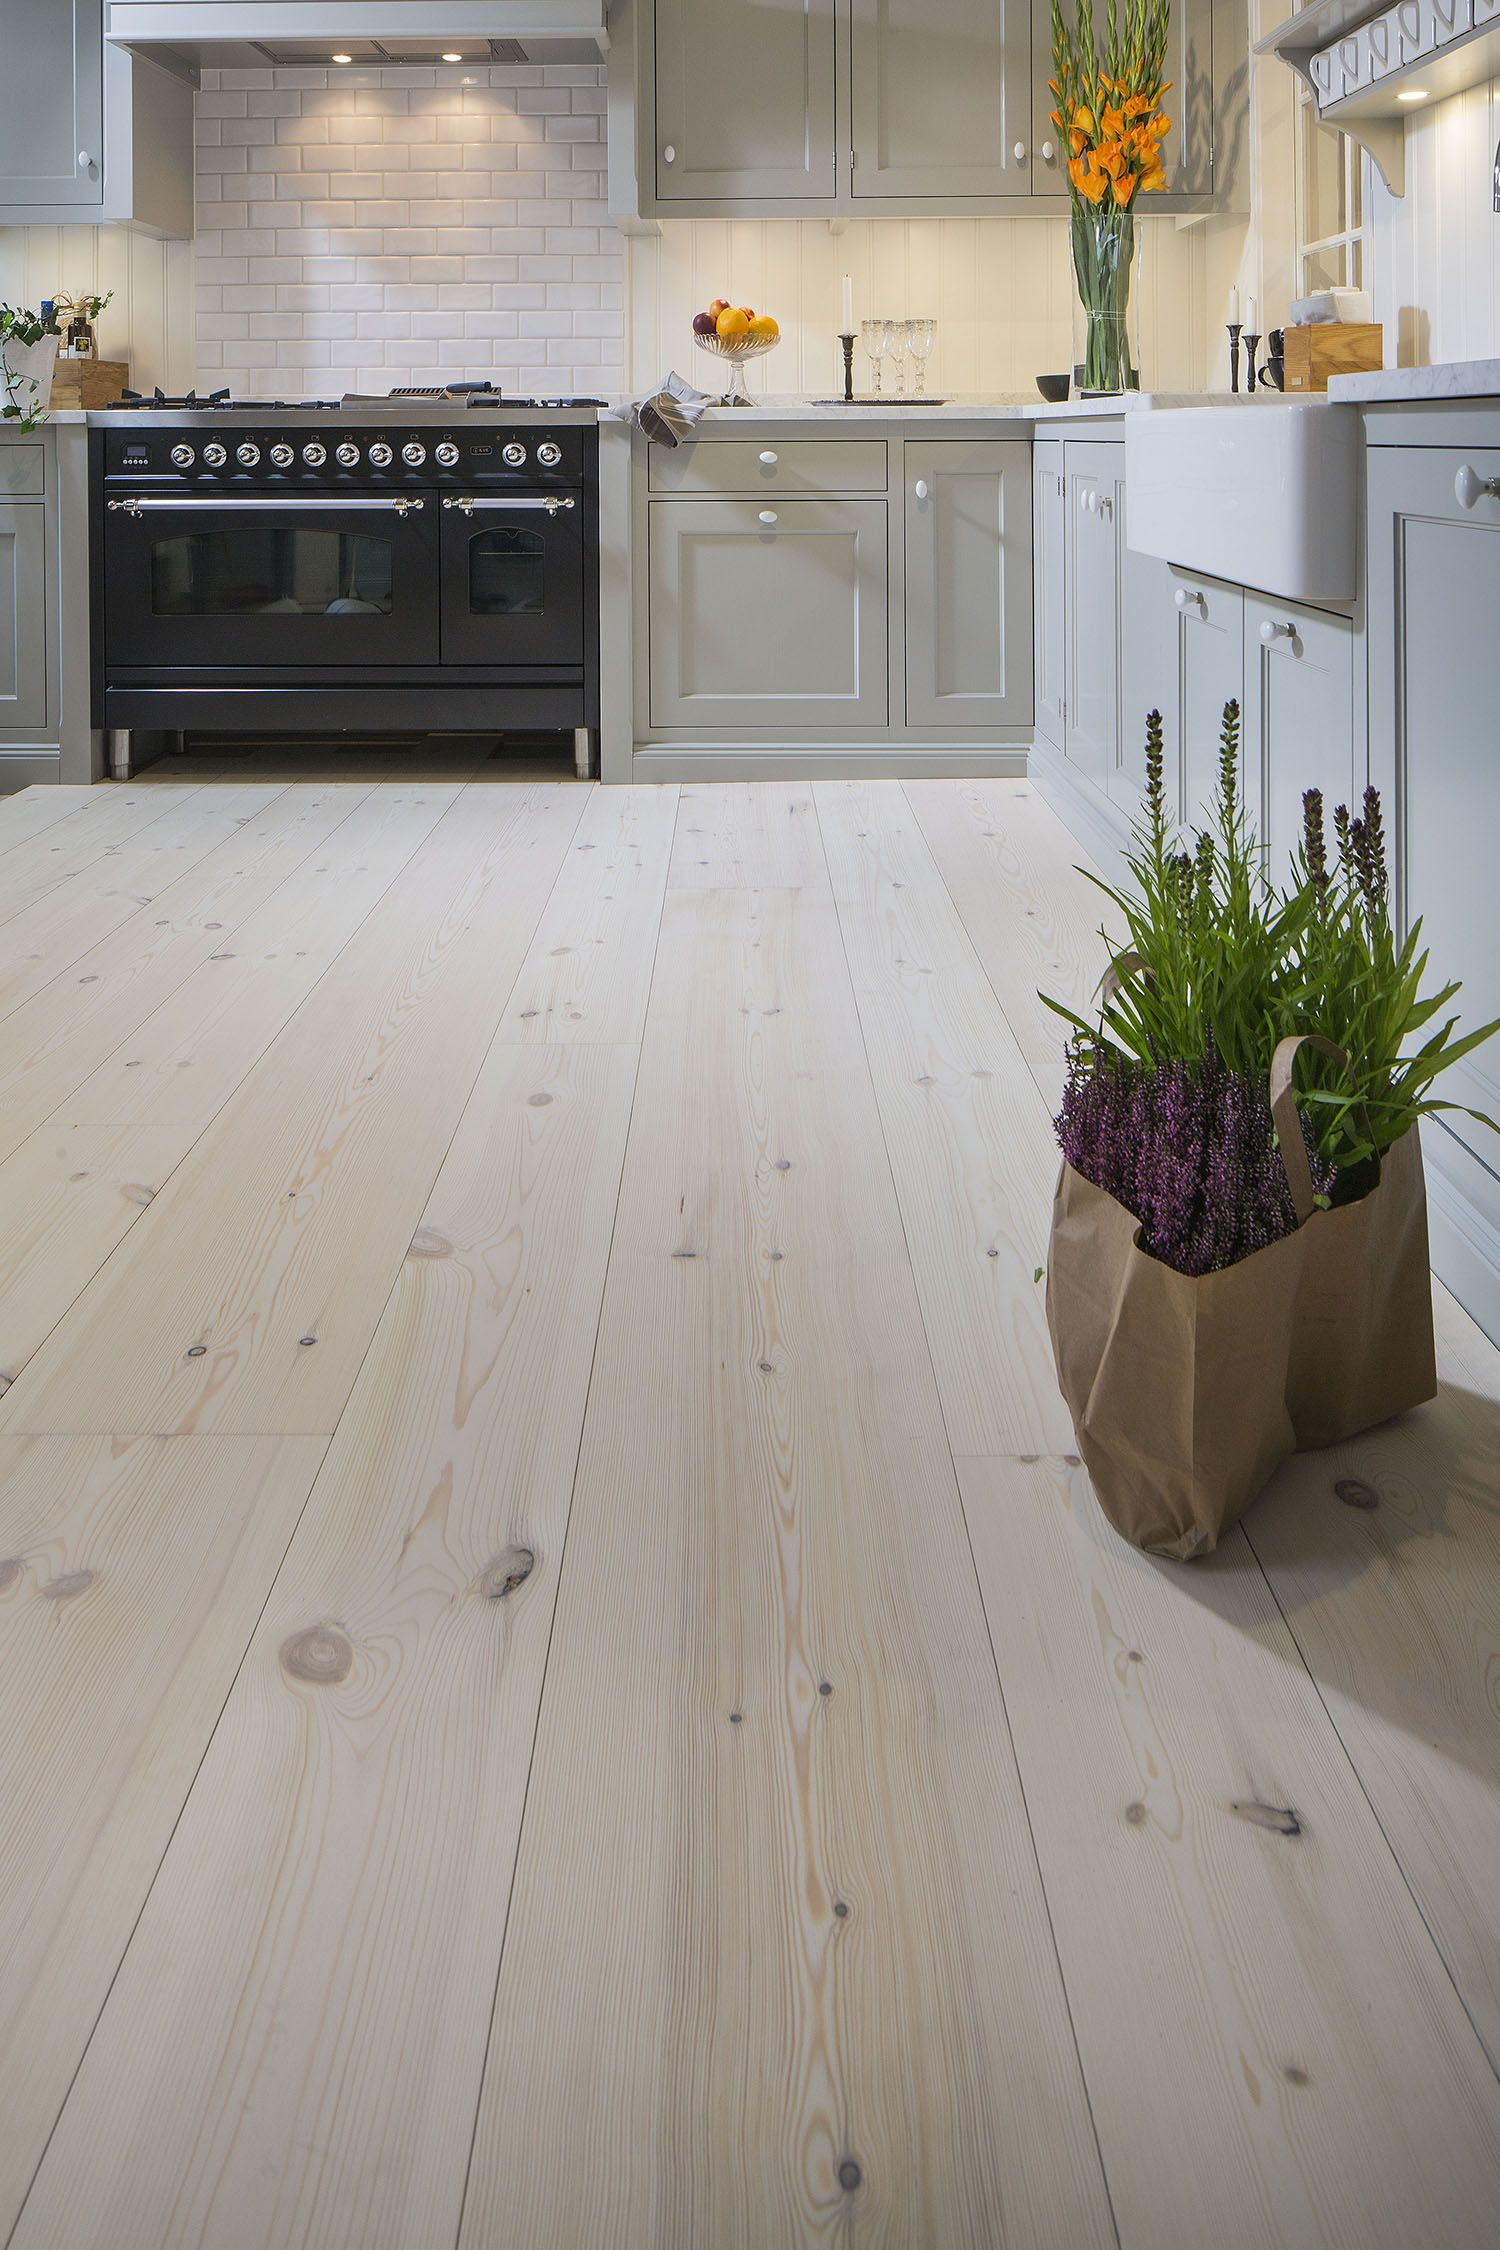 Lyed And Whiteoiled Pine Floors From Rappgo Pine Wood Flooring Kitchen Flooring Floor Design